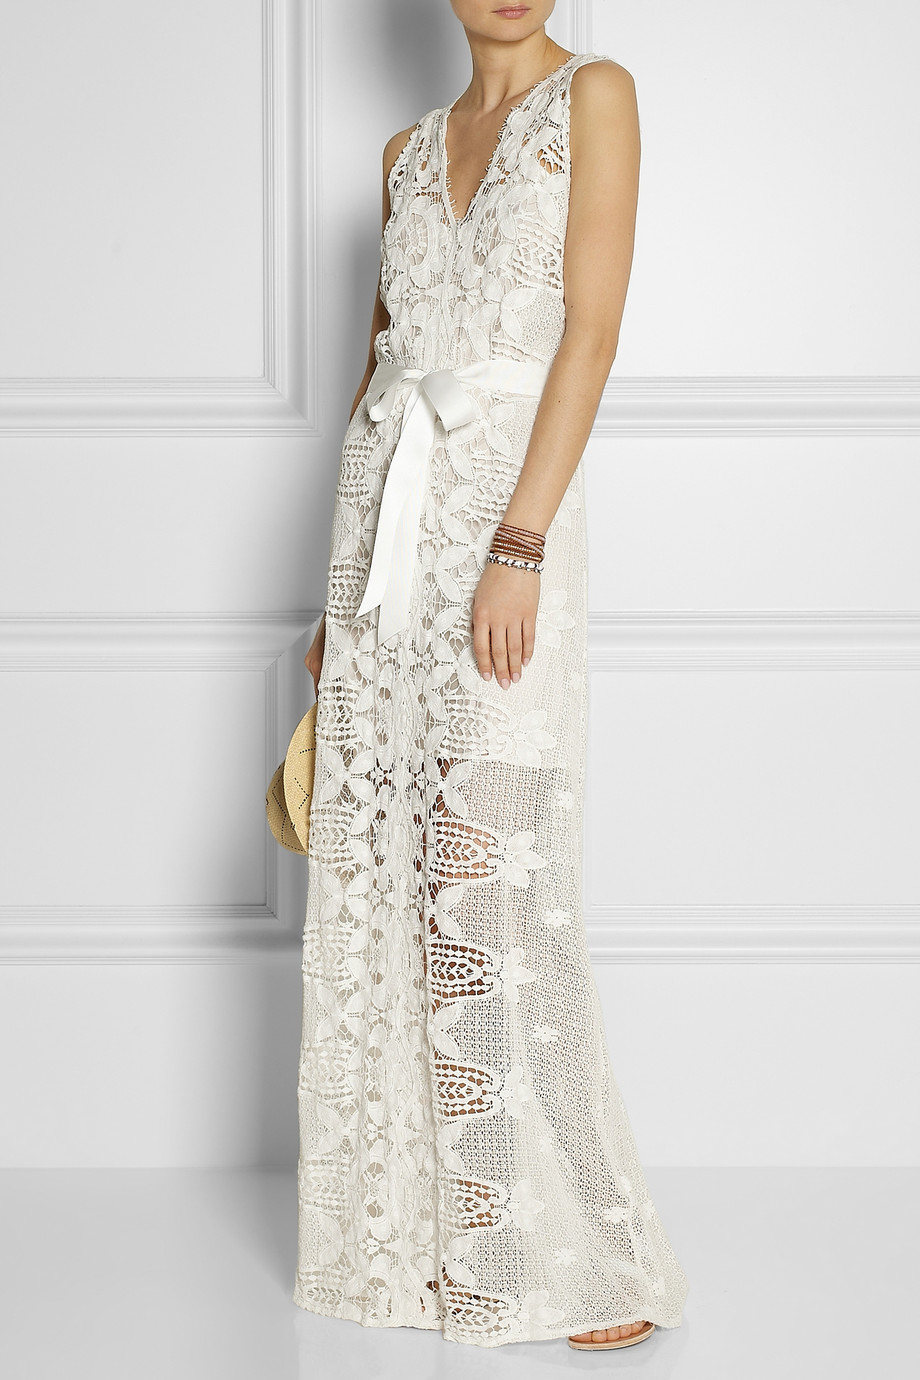 Miguelina Eve Crocheted-Lace Maxi Dress in White - Lyst